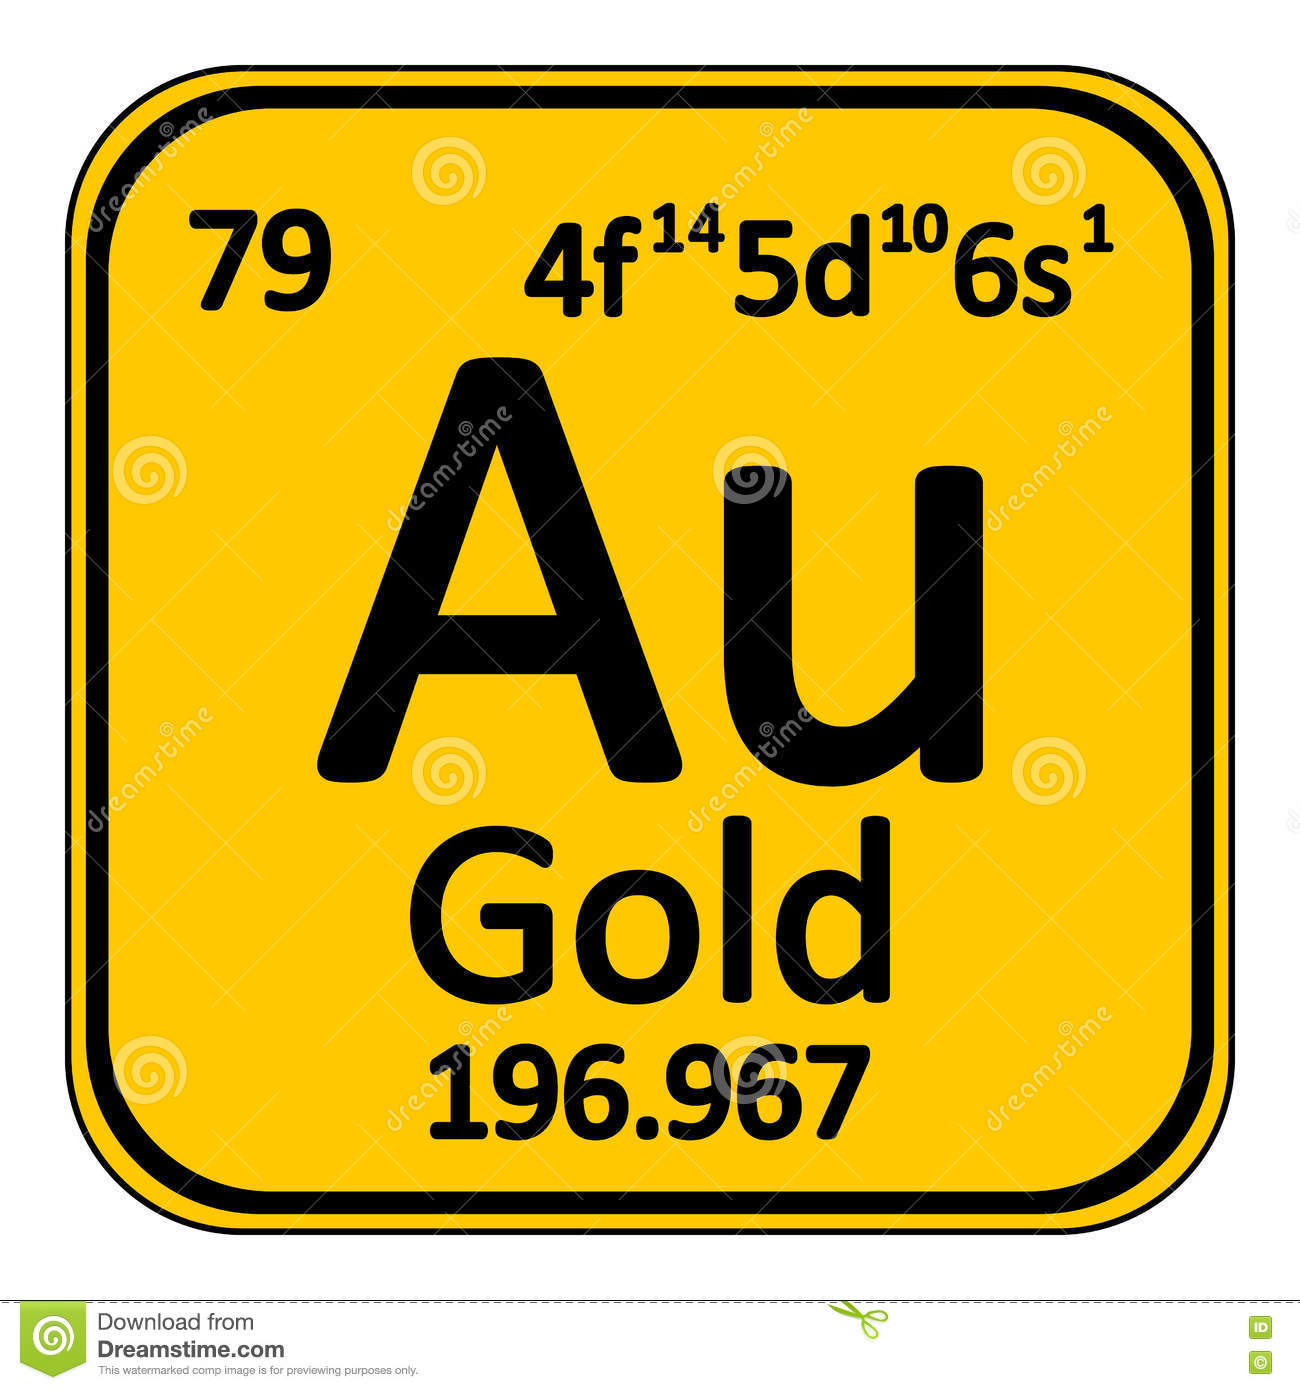 Periodic table element gold icon stock illustration image 79301375 royalty free illustration download periodic table element gold gamestrikefo Images